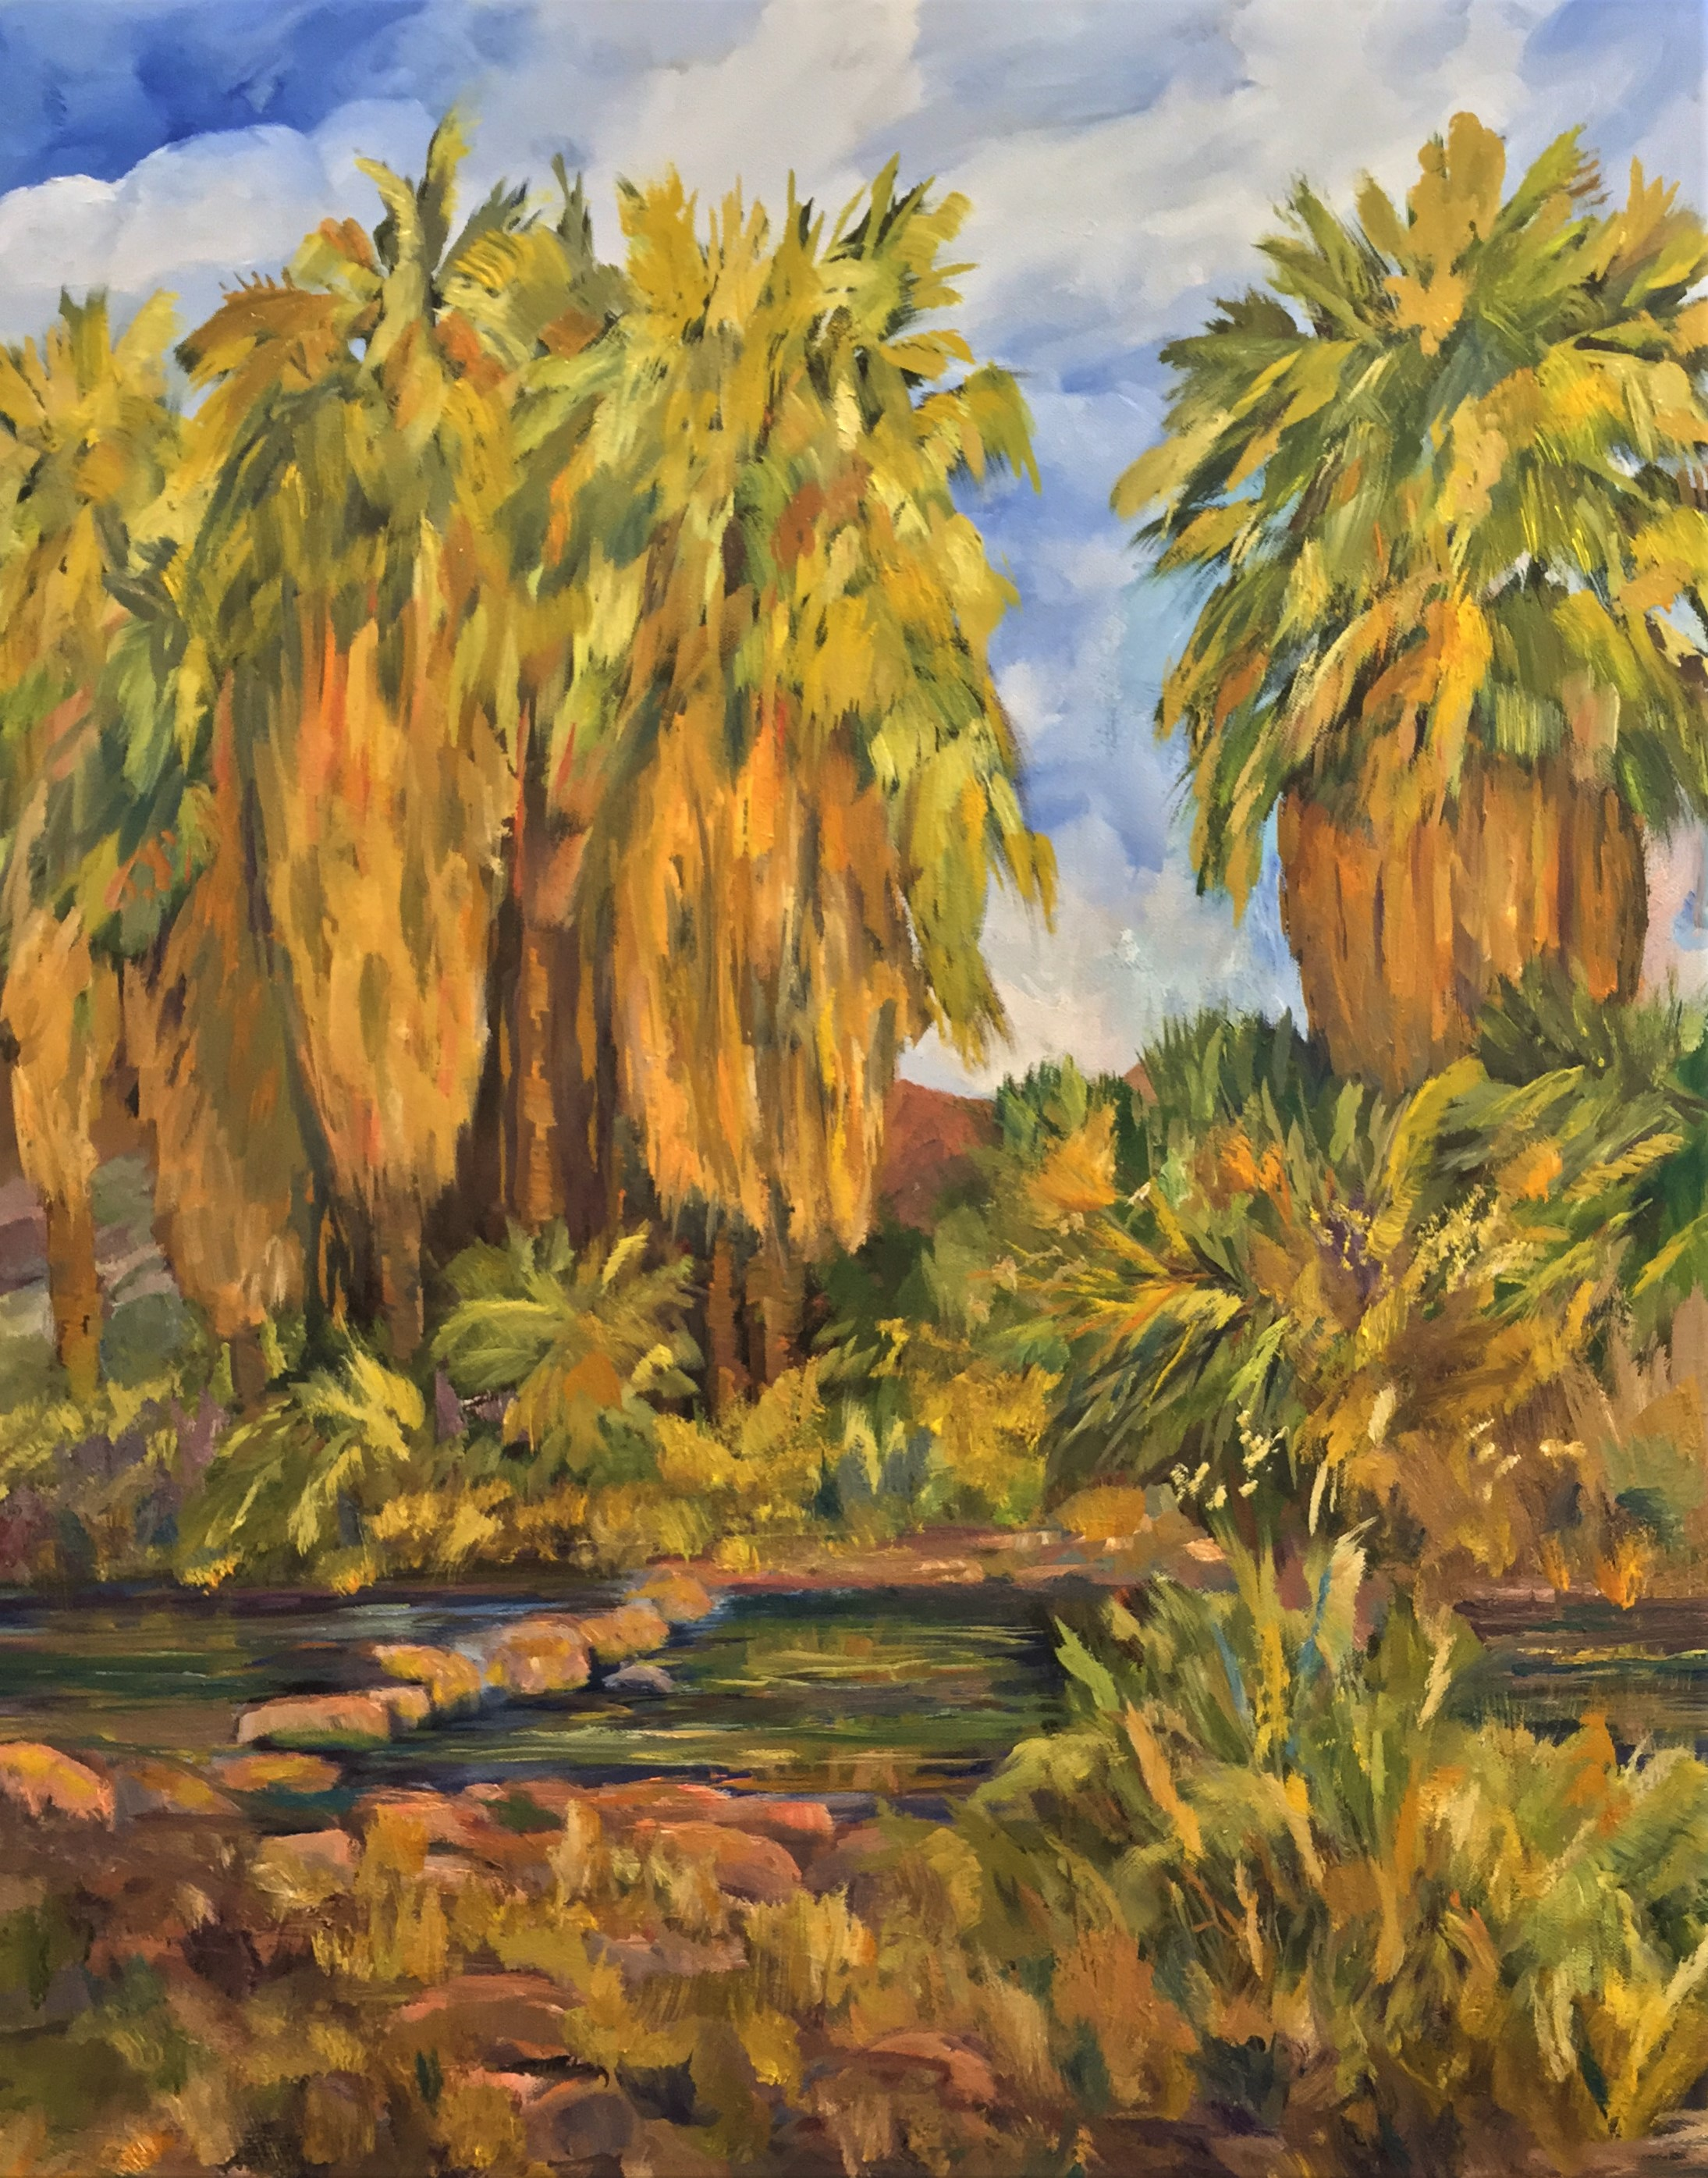 4-18-19  Andreas Trail Palms  30 x 24